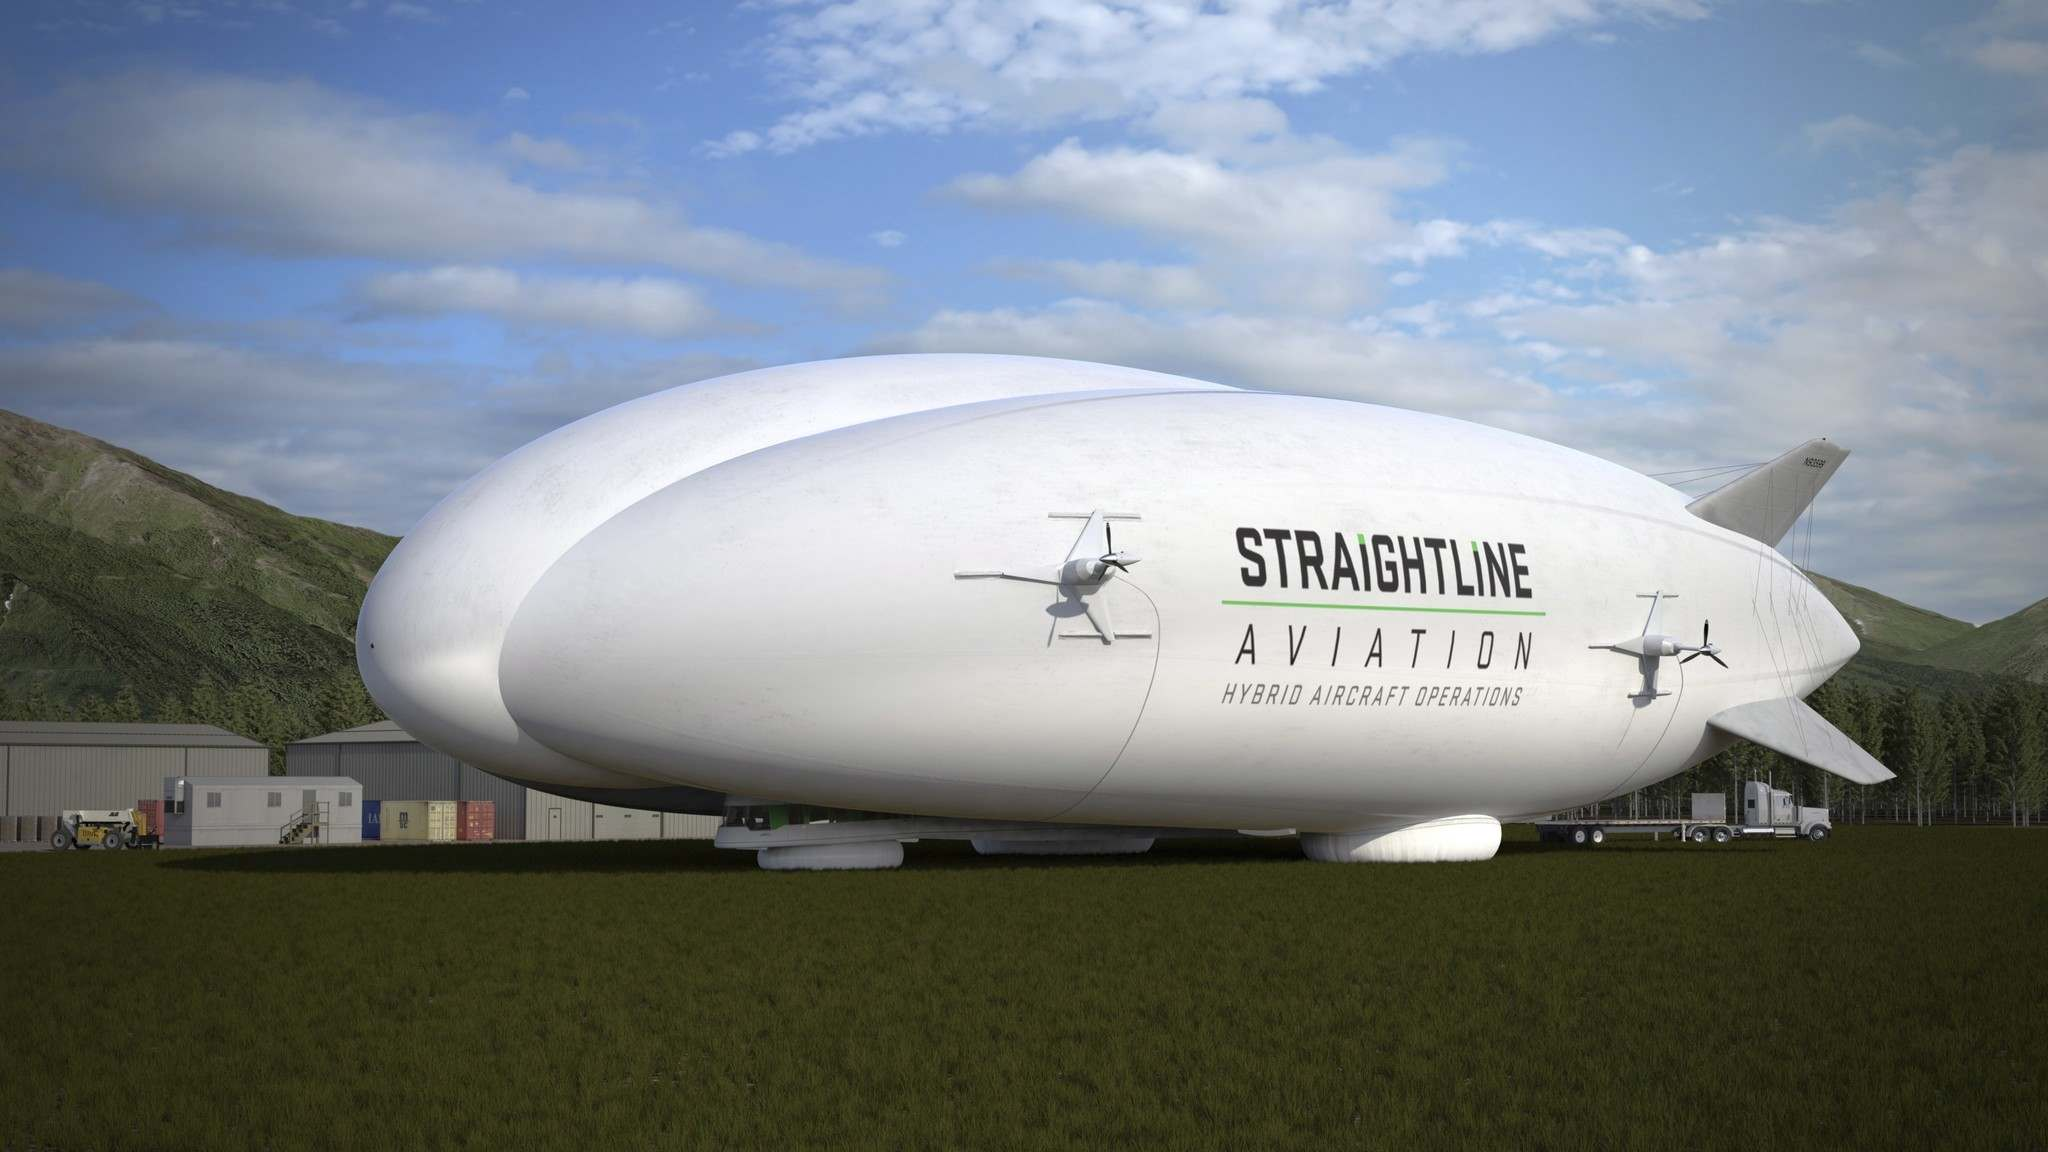 A Straightline Aviation hybrid aircraft is shown in a handout photo.